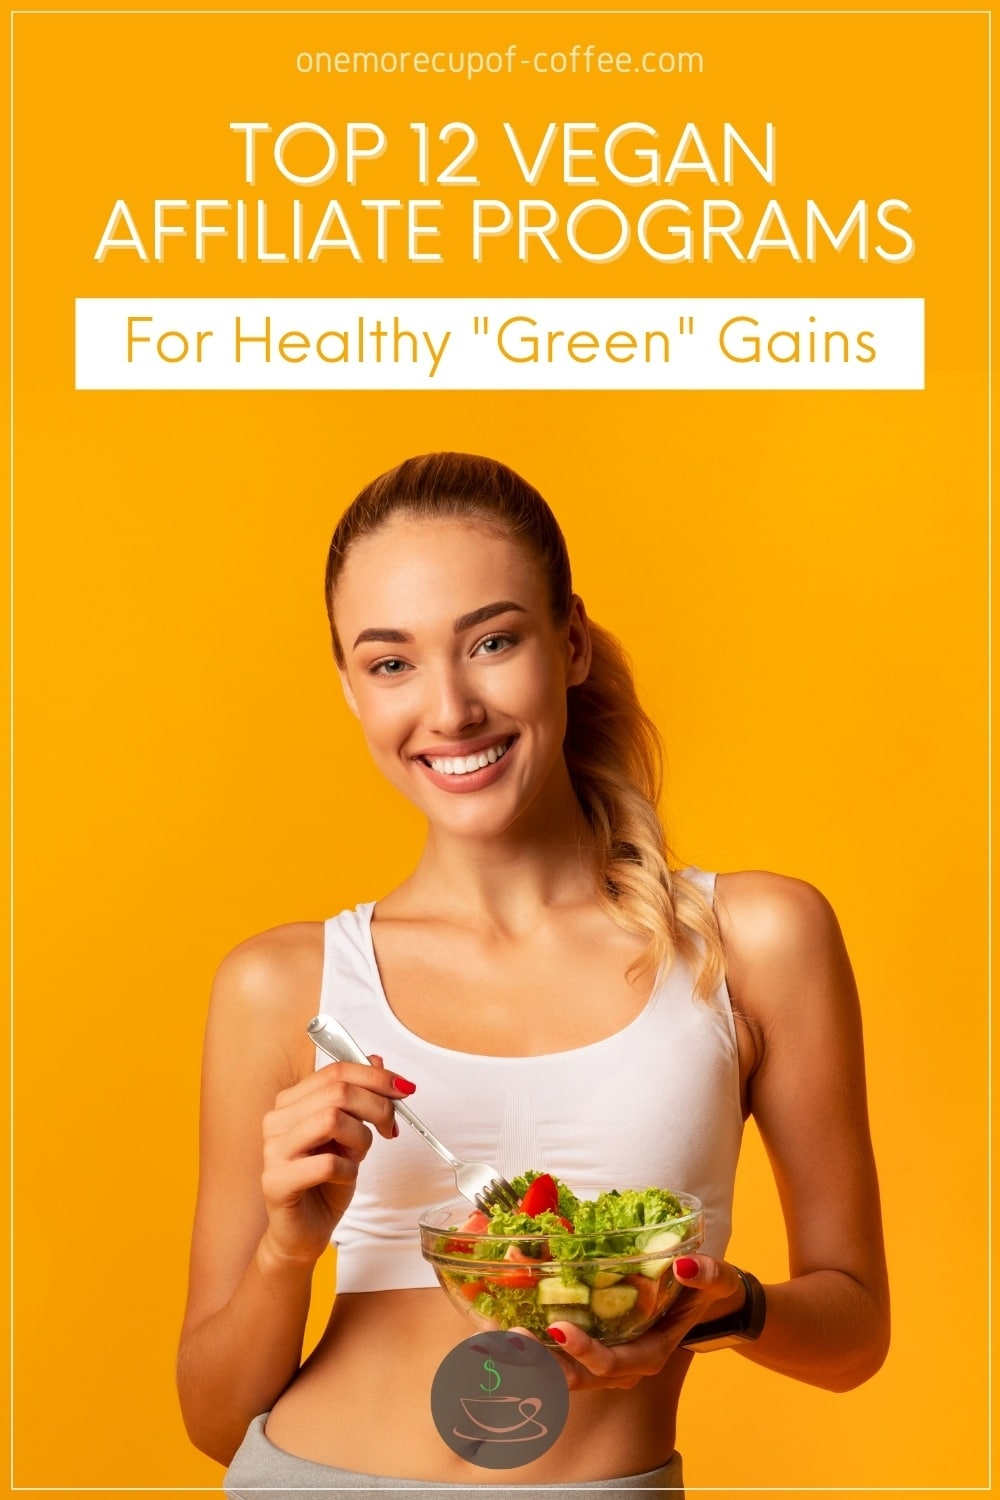 smiling woman in pony tail and white midriff workout top and grey pants holding a bowl of vegetable salad and fork, against a yellow background, with text overlay